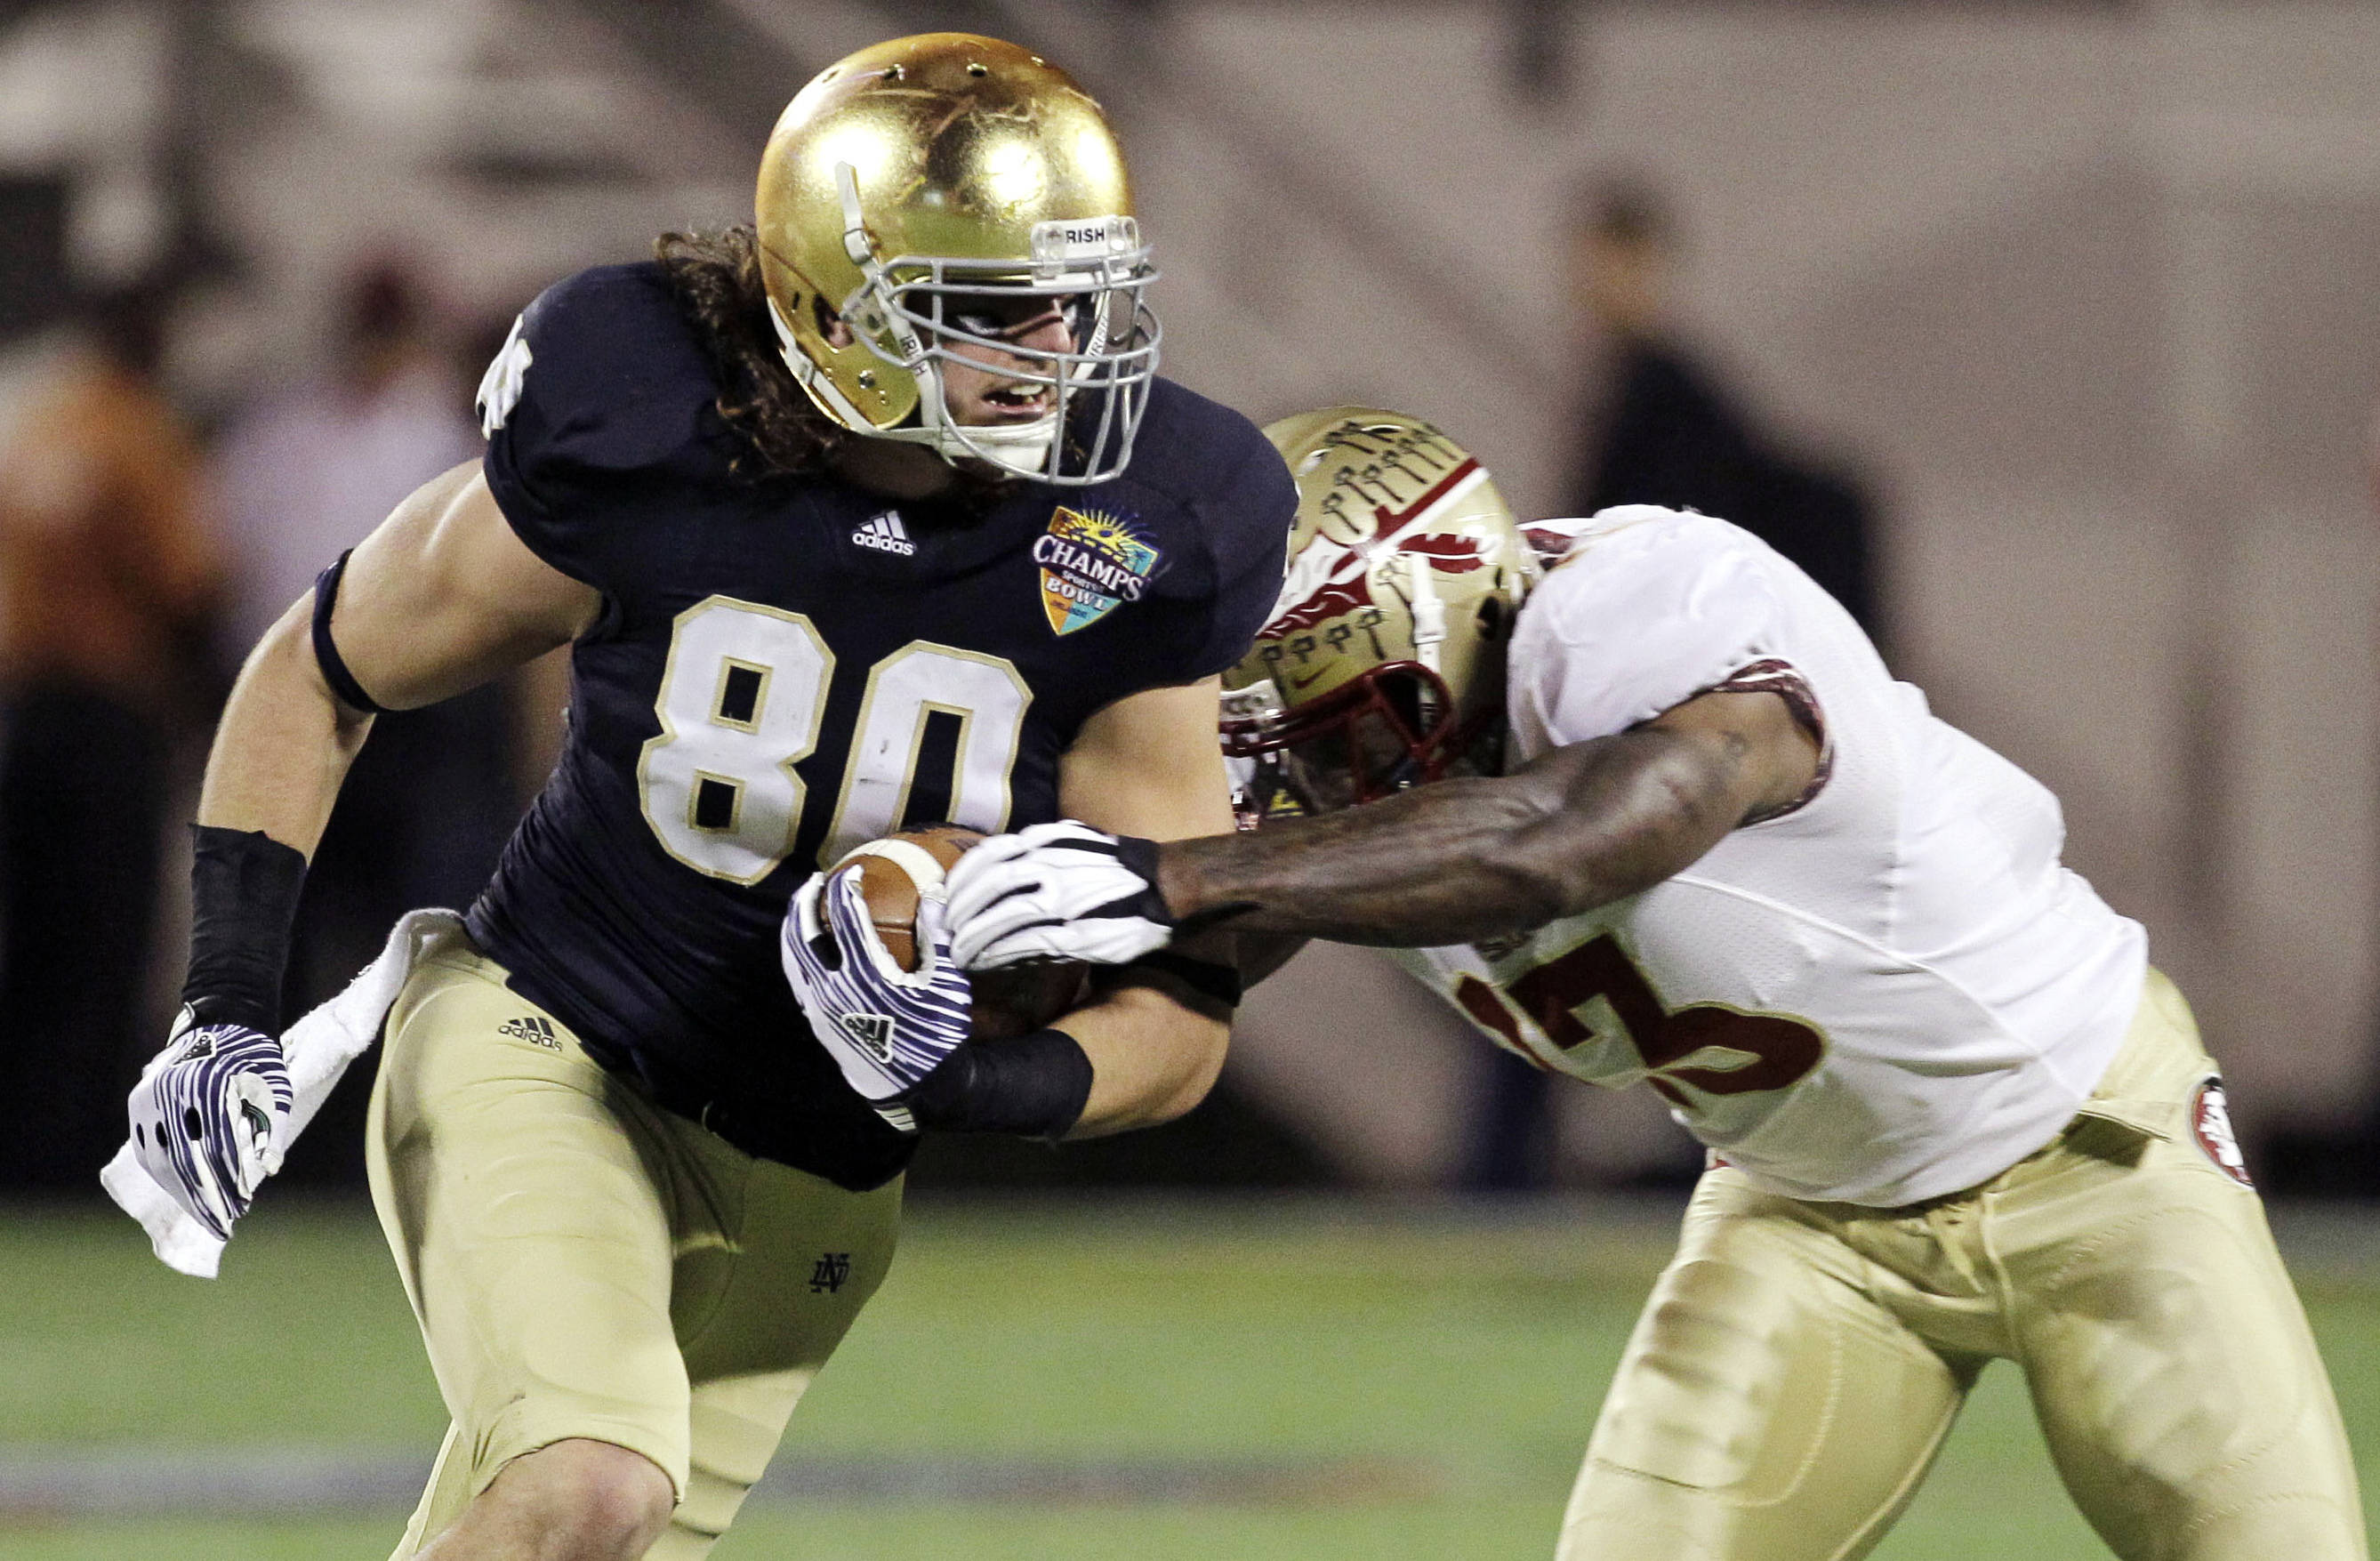 Florida State linebacker Nigel Bradham tries to bring down Notre Dame tight end Tyler Eifert after a reception in the first half of the Champs Sports Bowl. (AP Photo/John Raoux)